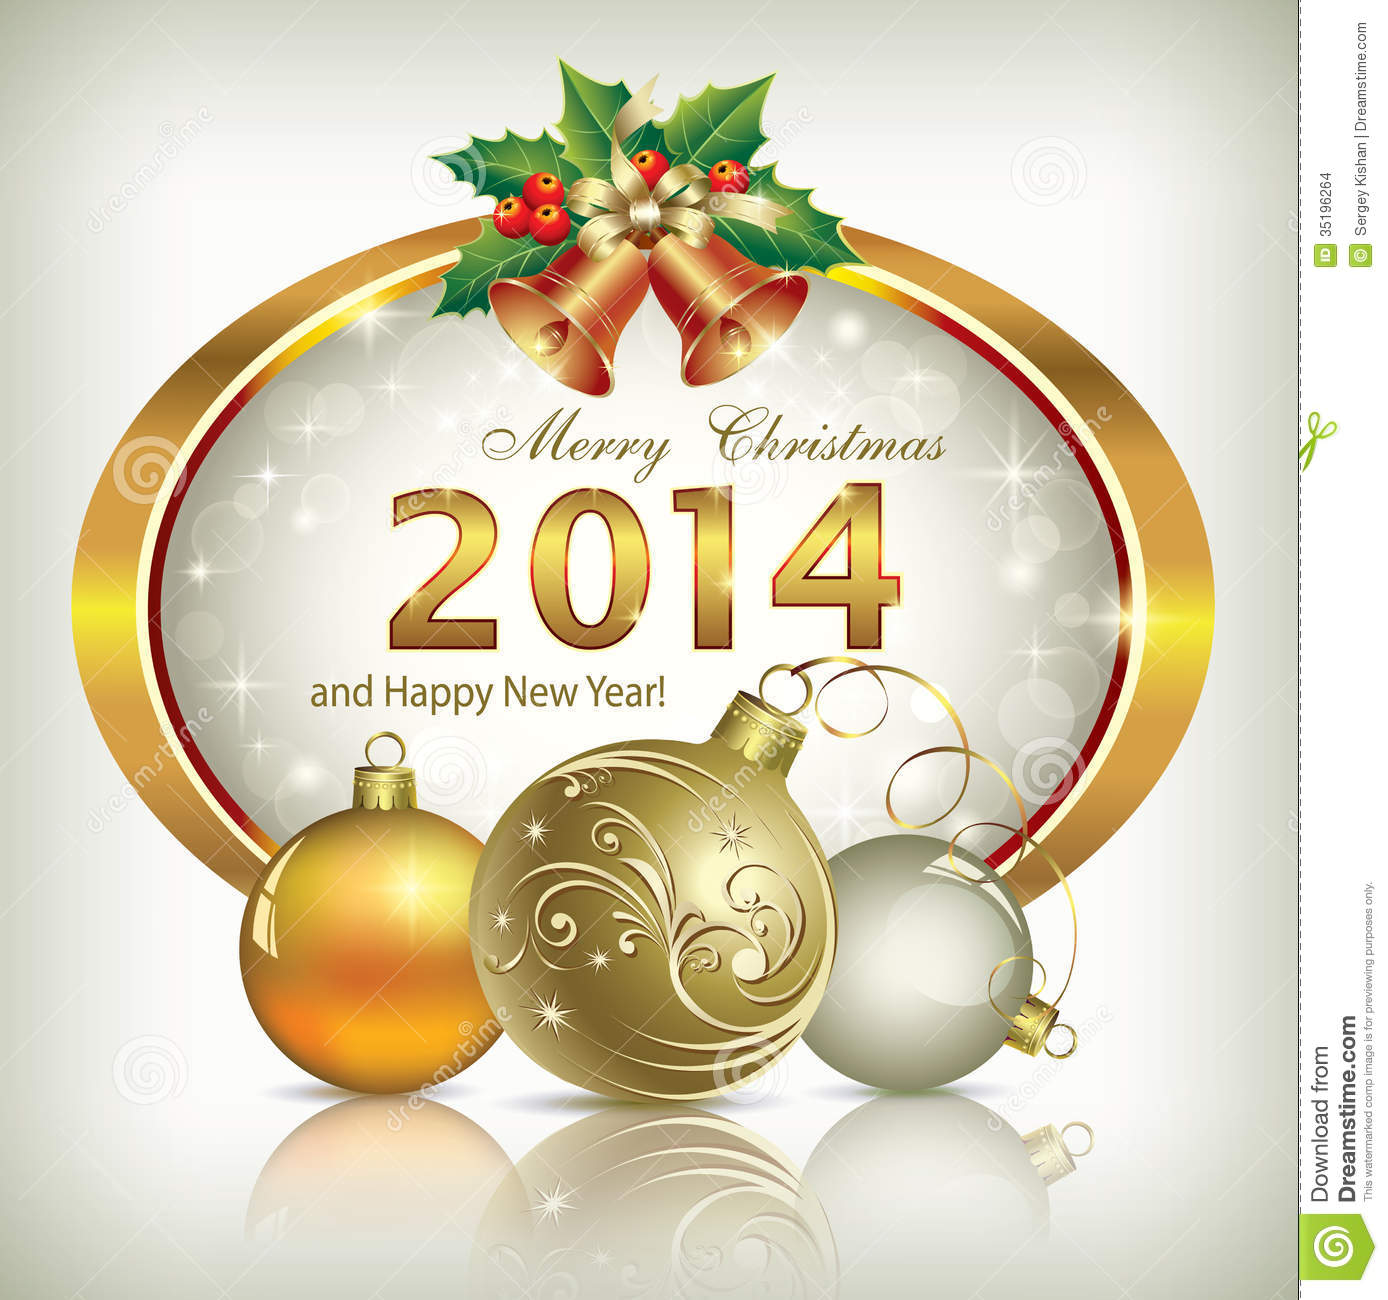 Christmas greeting card 2014 stock vector illustration of christmas greeting card 2014 m4hsunfo